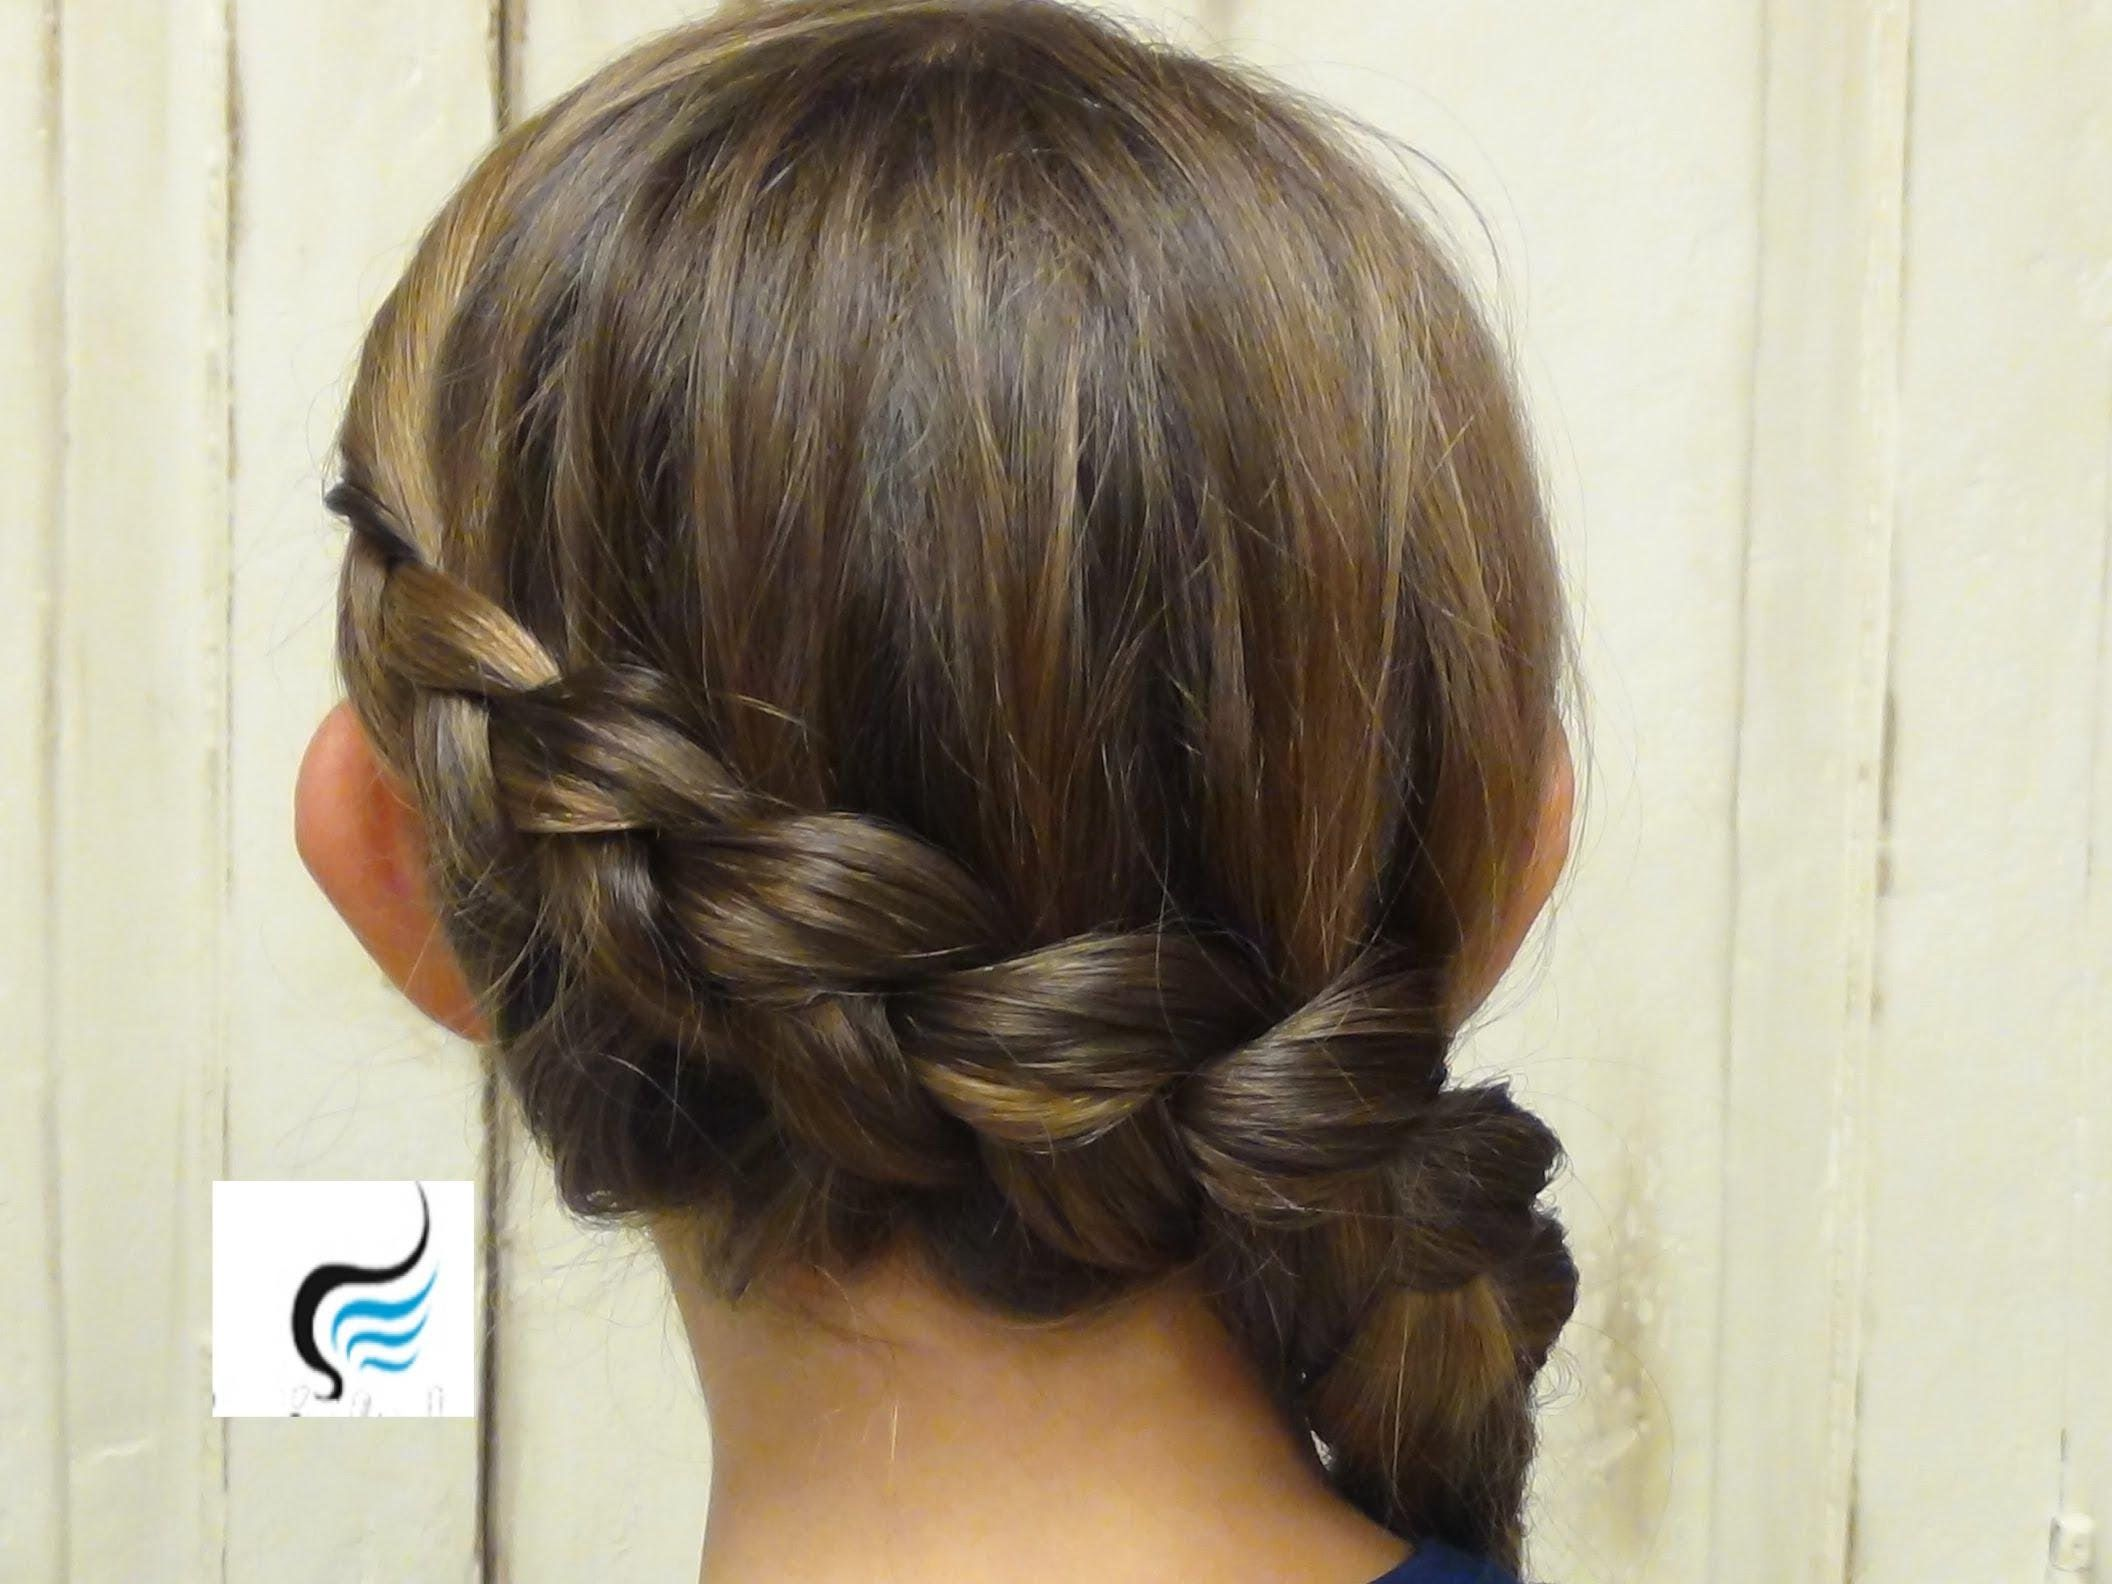 Dutch braid tutorial braid hairstyles ava halloween pinterest